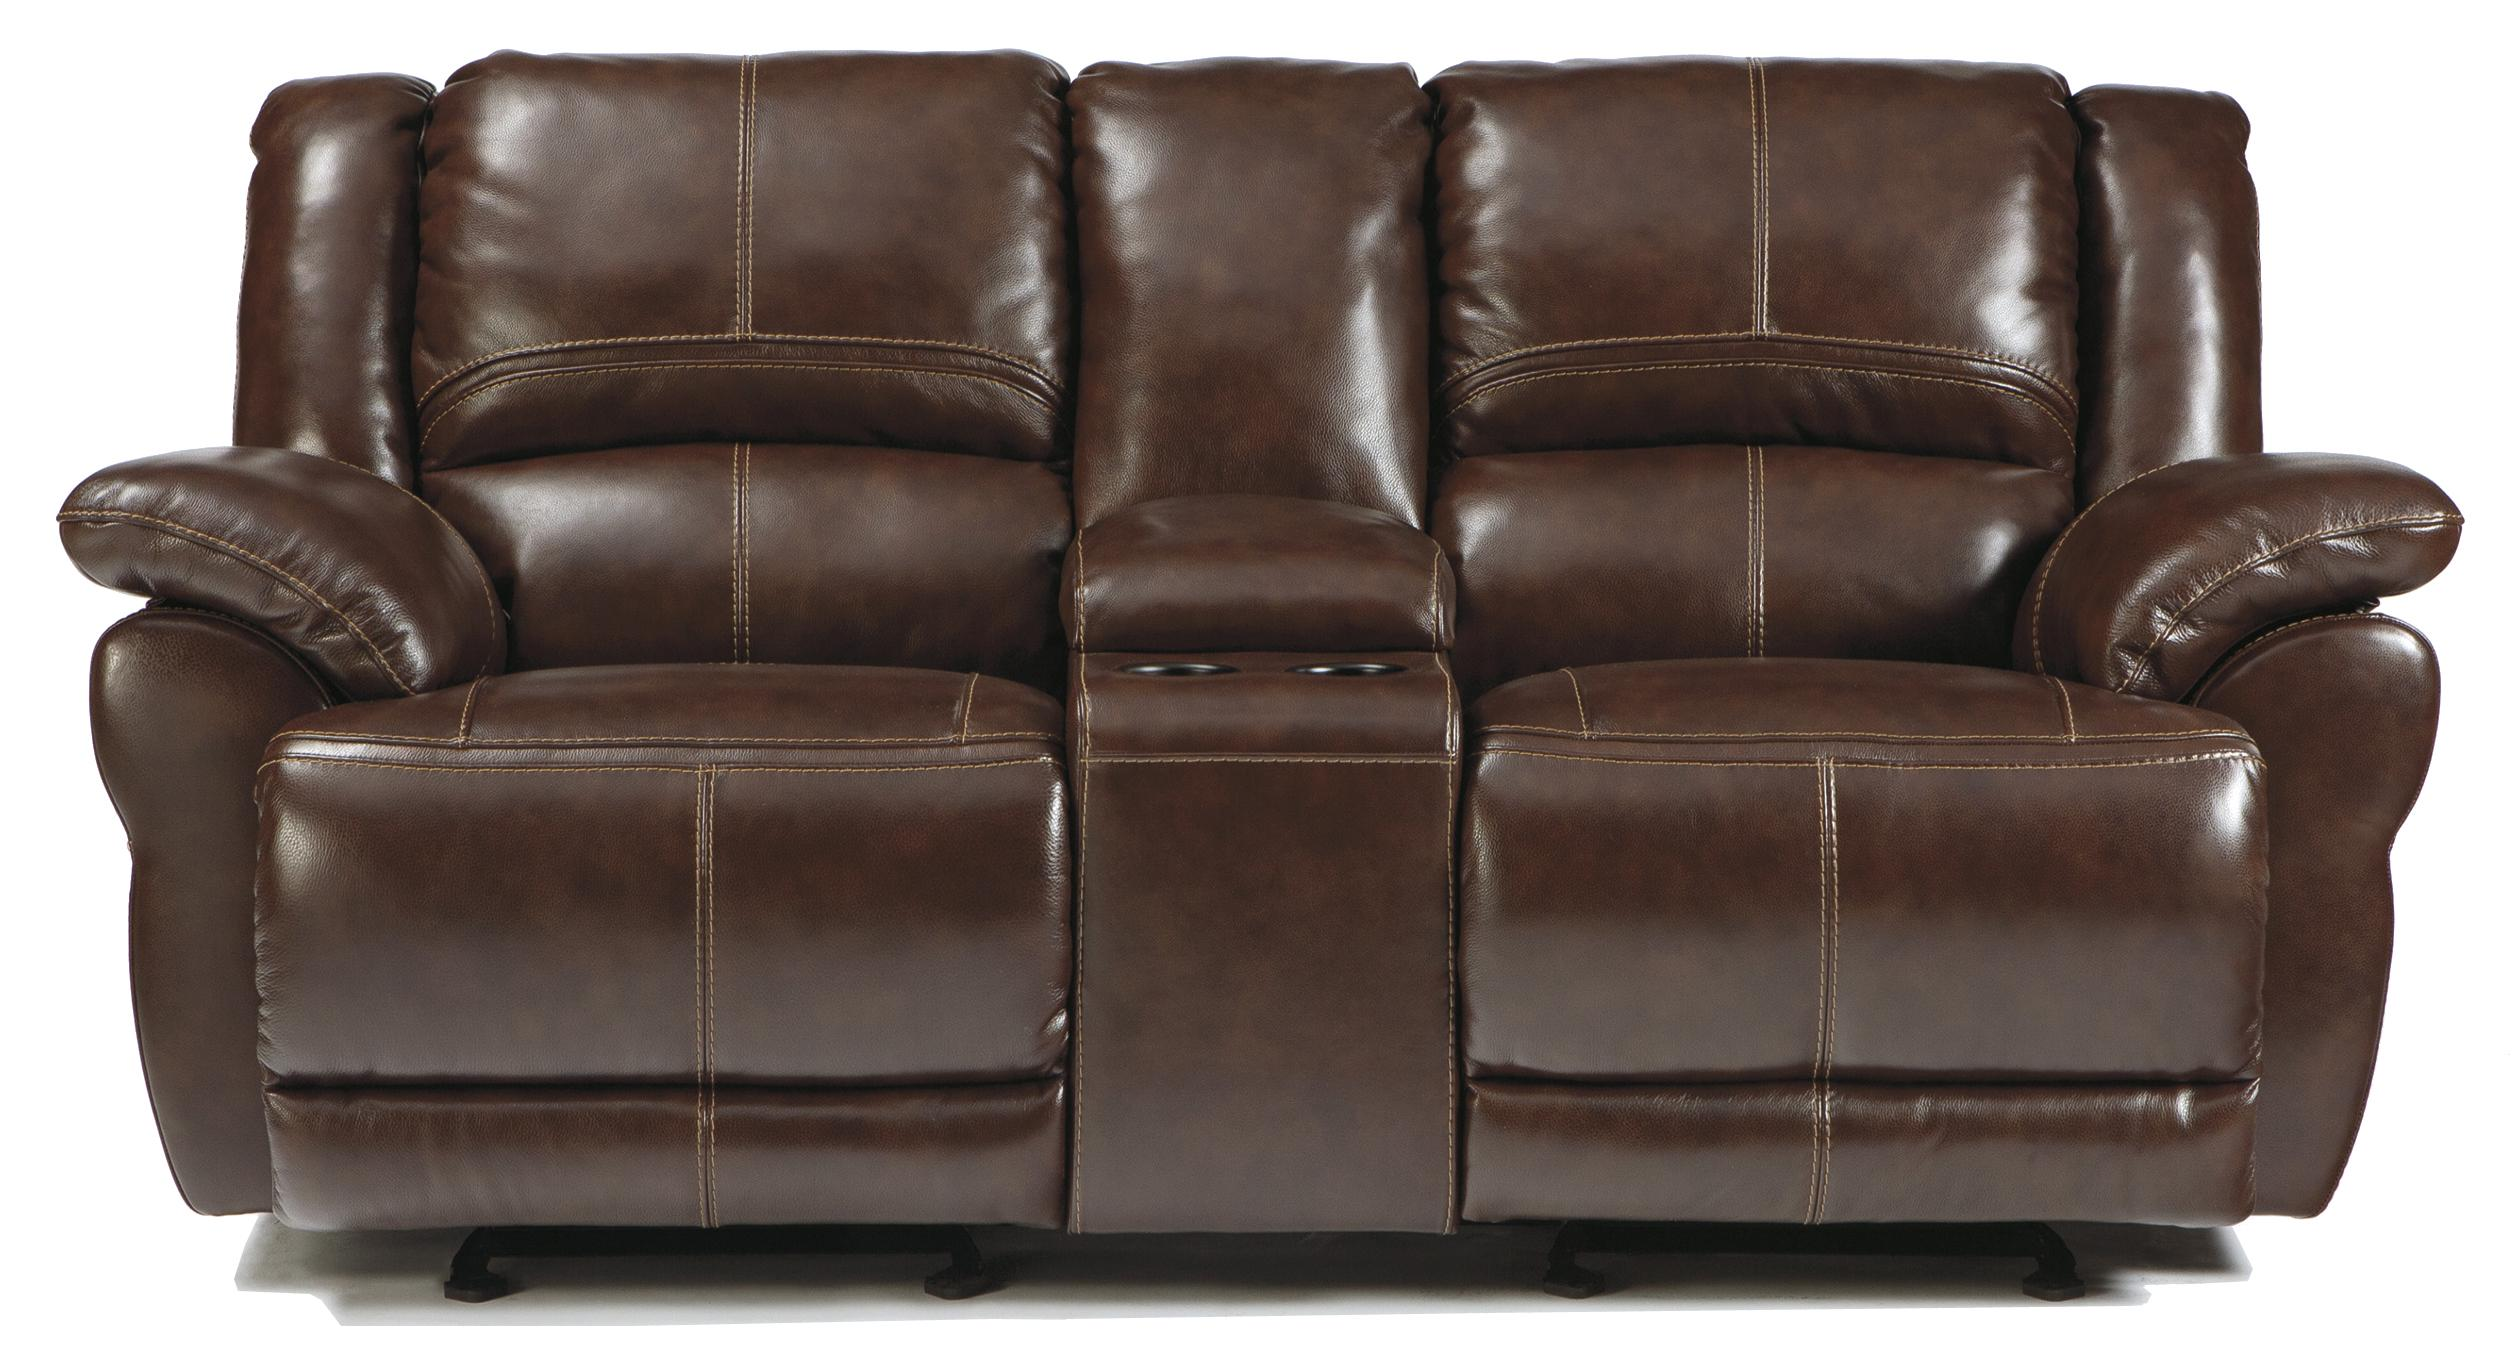 Signature Design by Ashley Lenoris - Coffee Glider Reclining Loveseat w/ Console - Item Number: U9890143